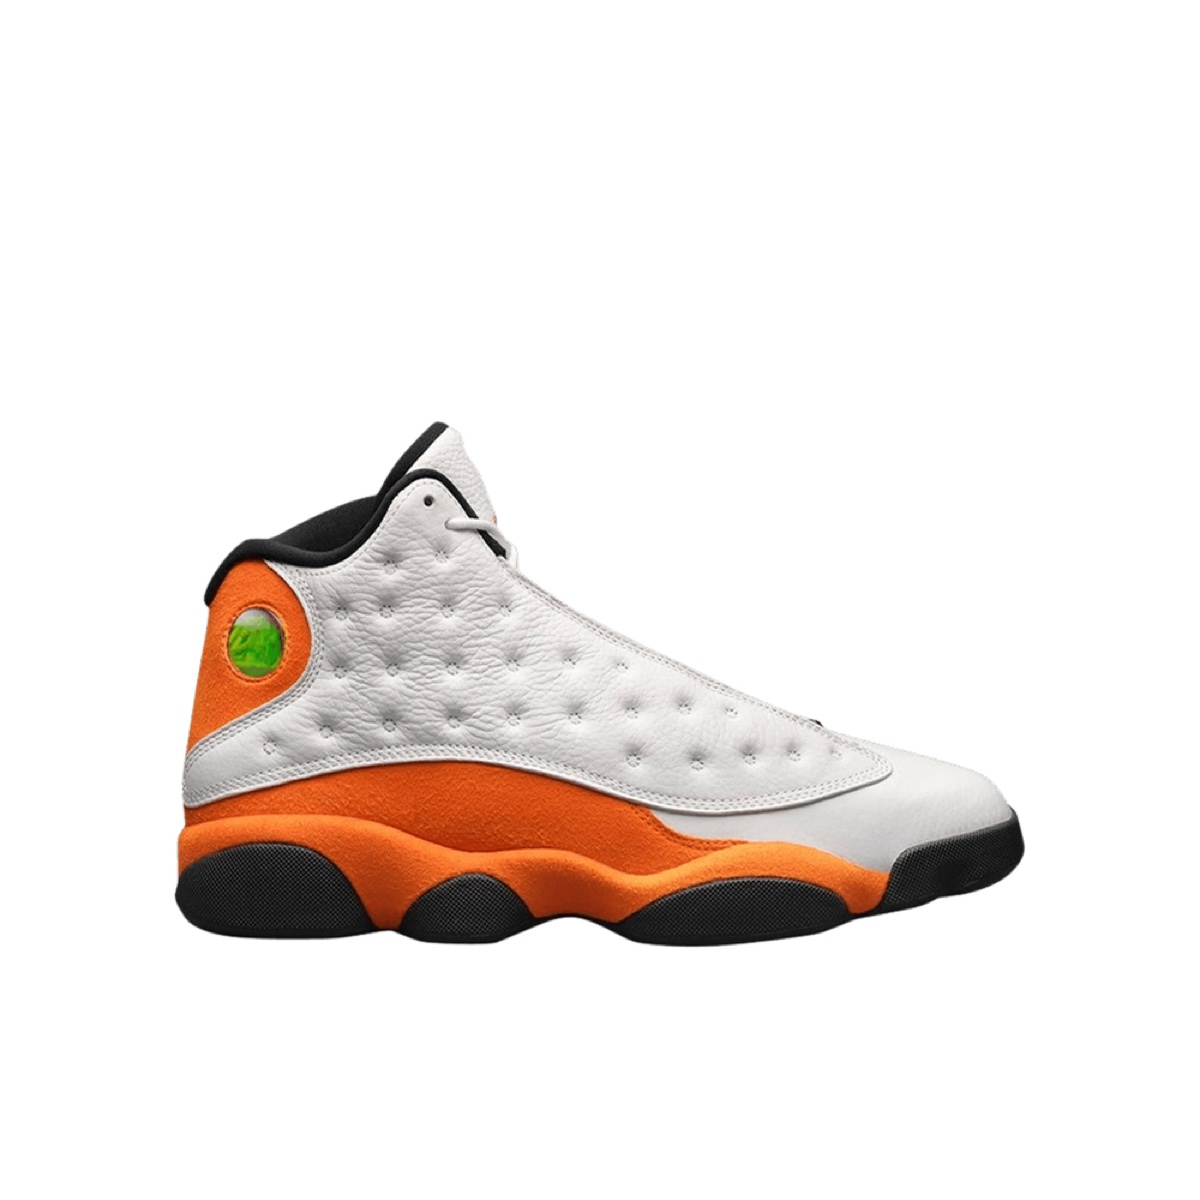 Jordan 13 Retro Starfish (GS)